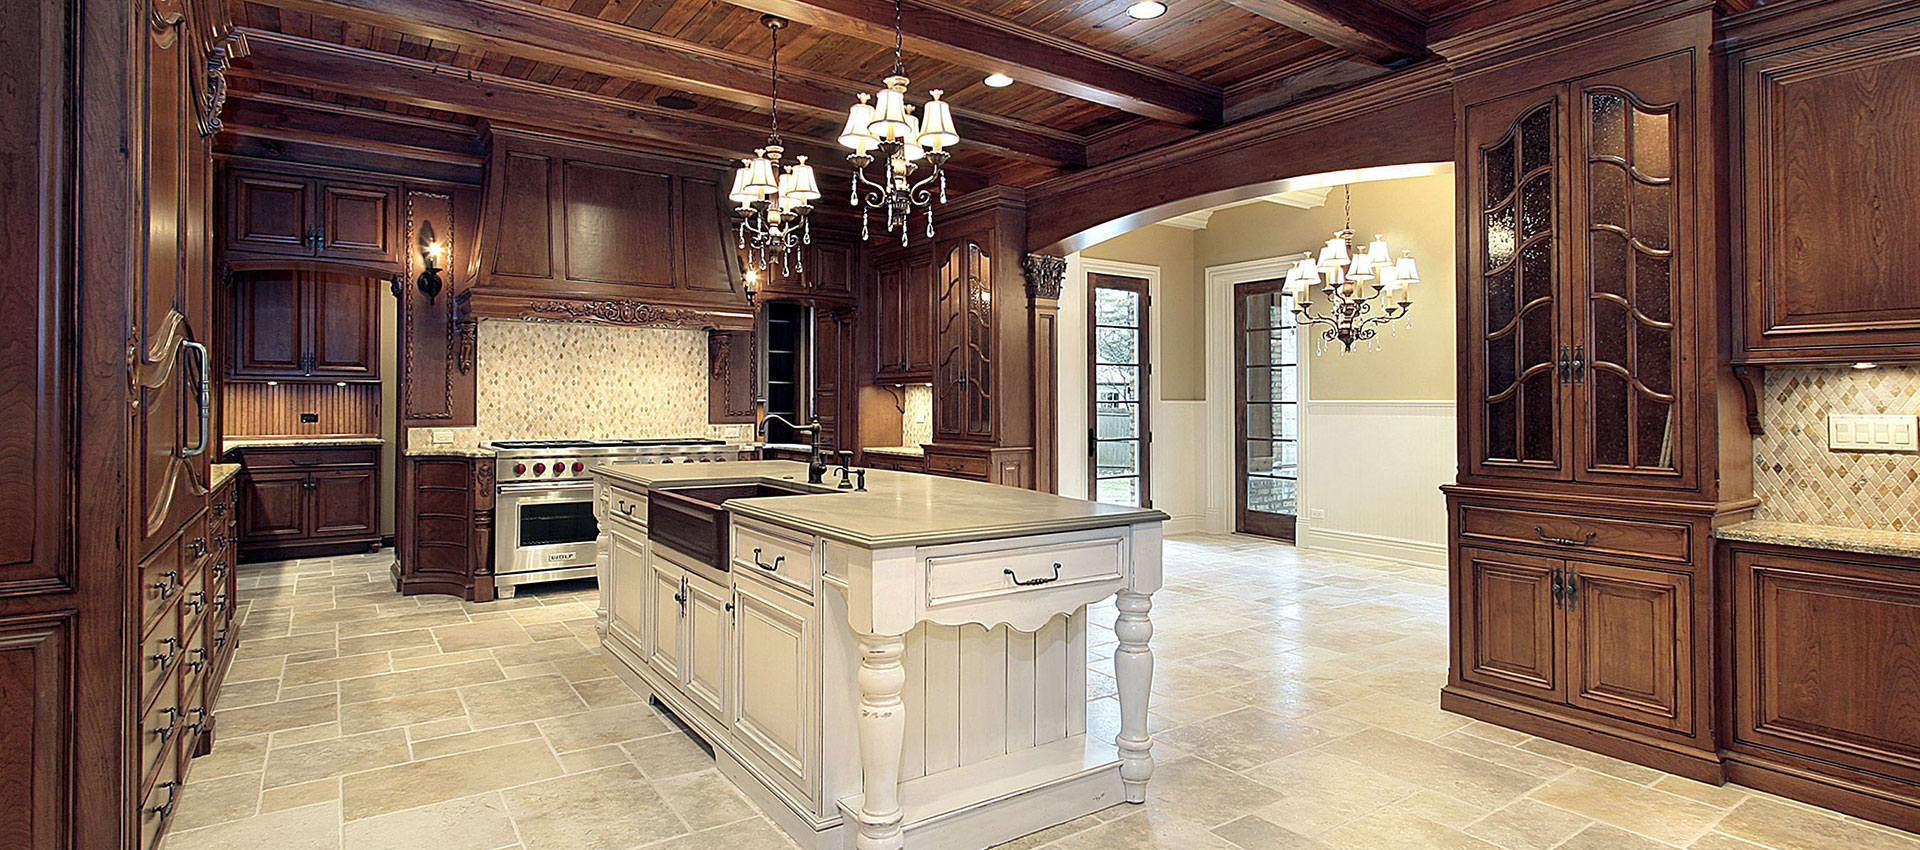 NATURAL STONES:  MARBLE, GRANITE, SANDSTONE, LIMESTONE, KOTA STONE  FLOORING, ELEVATION, DECORATION, AND COUNTERTOP.